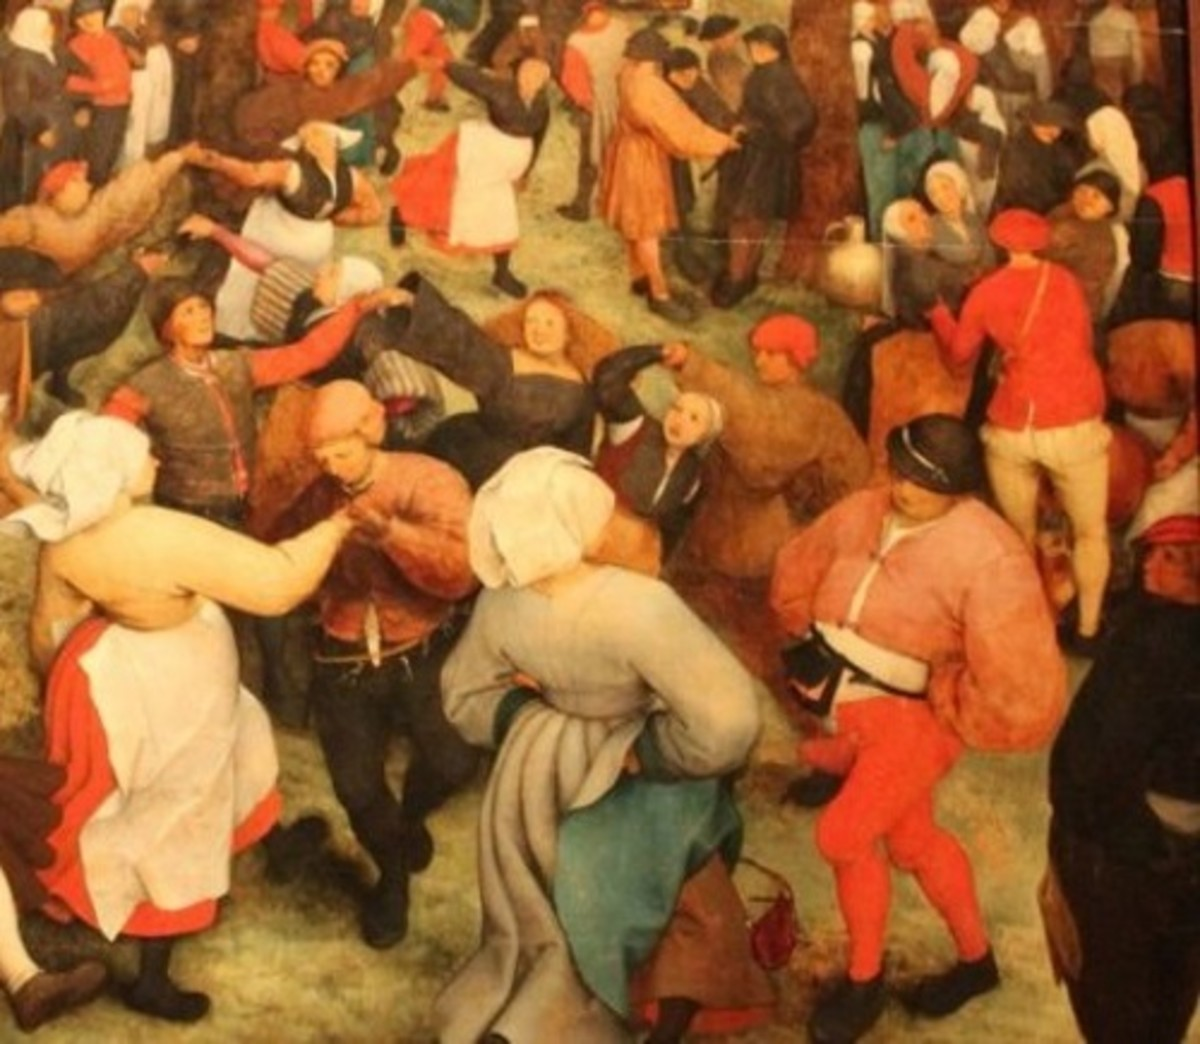 Hyperactivity, delirium, motor restlessness, and over-sexual excitement characterized the dance plague.